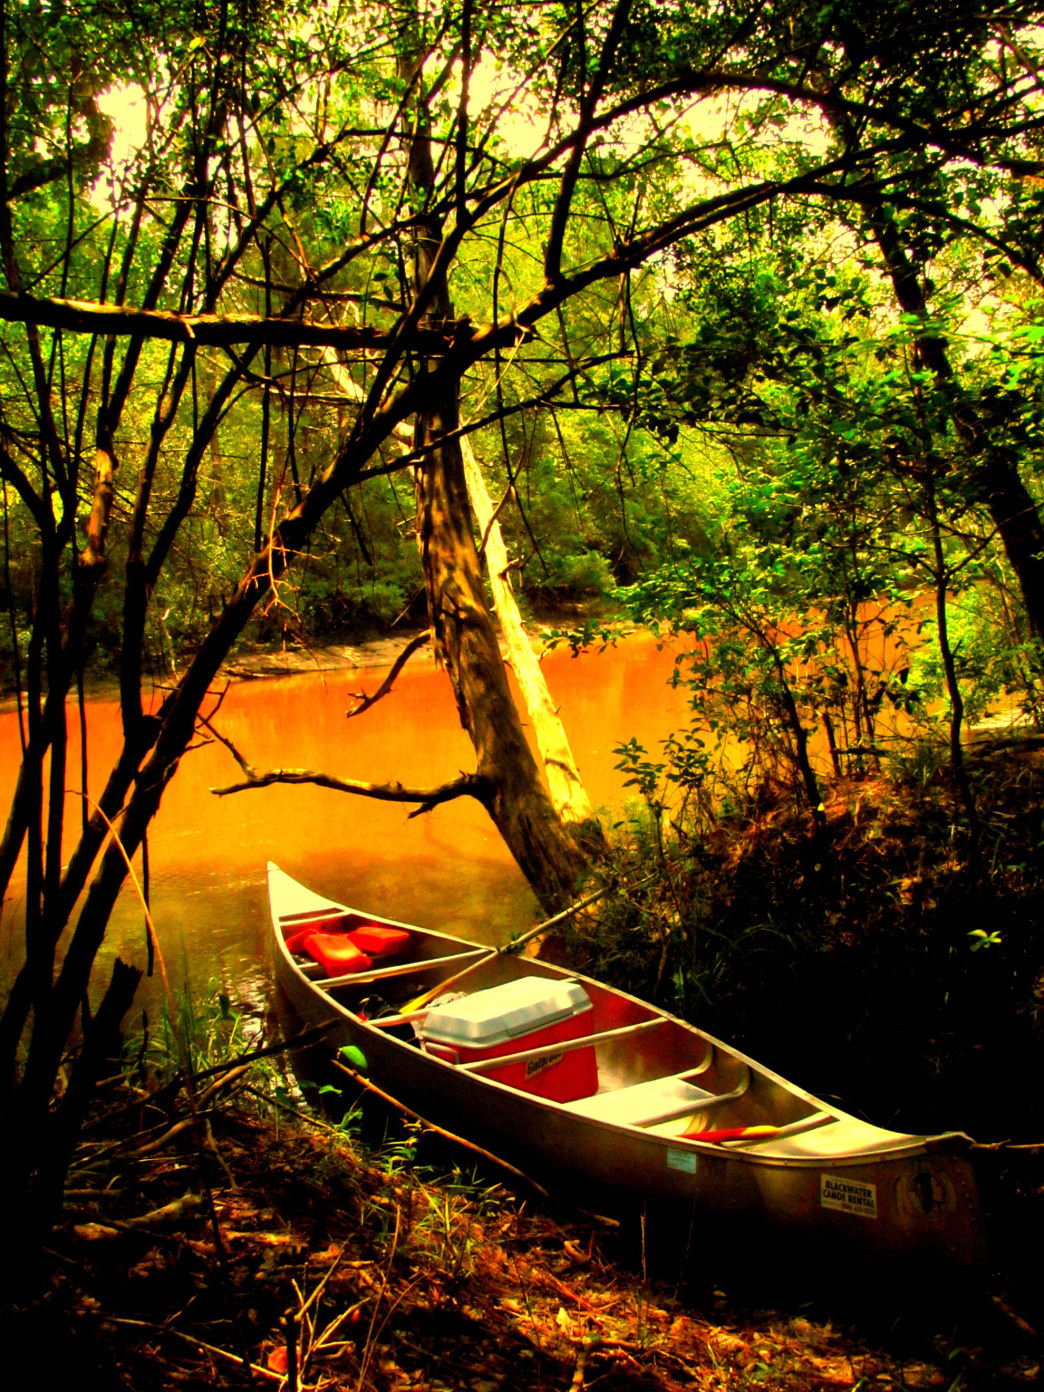 The 31-mile Blackwater Paddling Trail features the most scenic sections of the river.